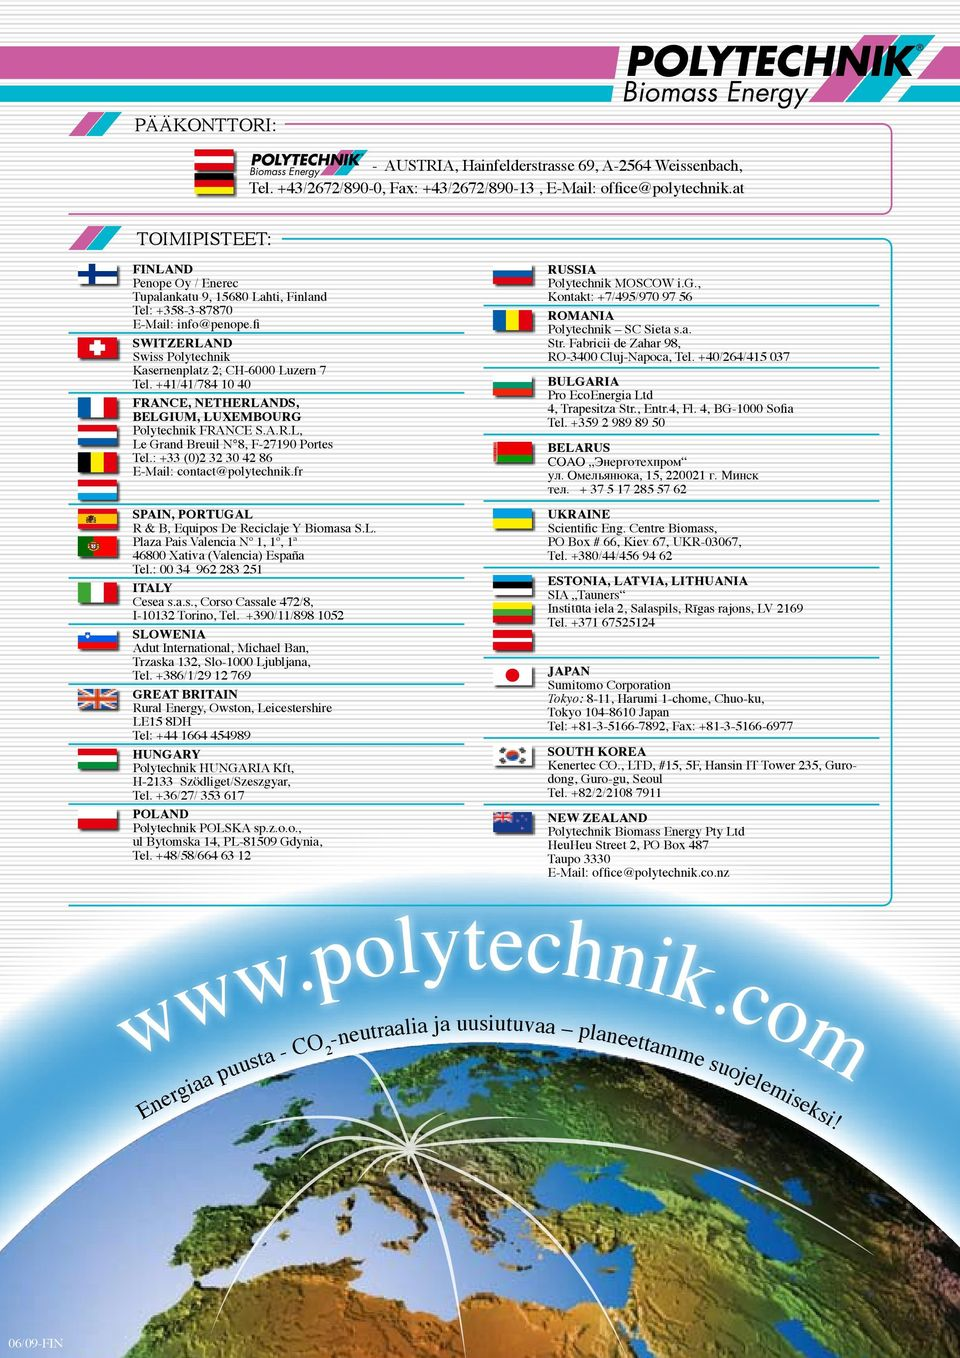 +41/41/784 10 40 FRANCE, NETHERLANDS, BELGIUM, LUXEMBOURG Polytechnik FRANCE S.A.R.L, Le Grand Breuil N 8, F-27190 Portes Tel.: +33 (0)2 32 30 42 86 E-Mail: contact@polytechnik.